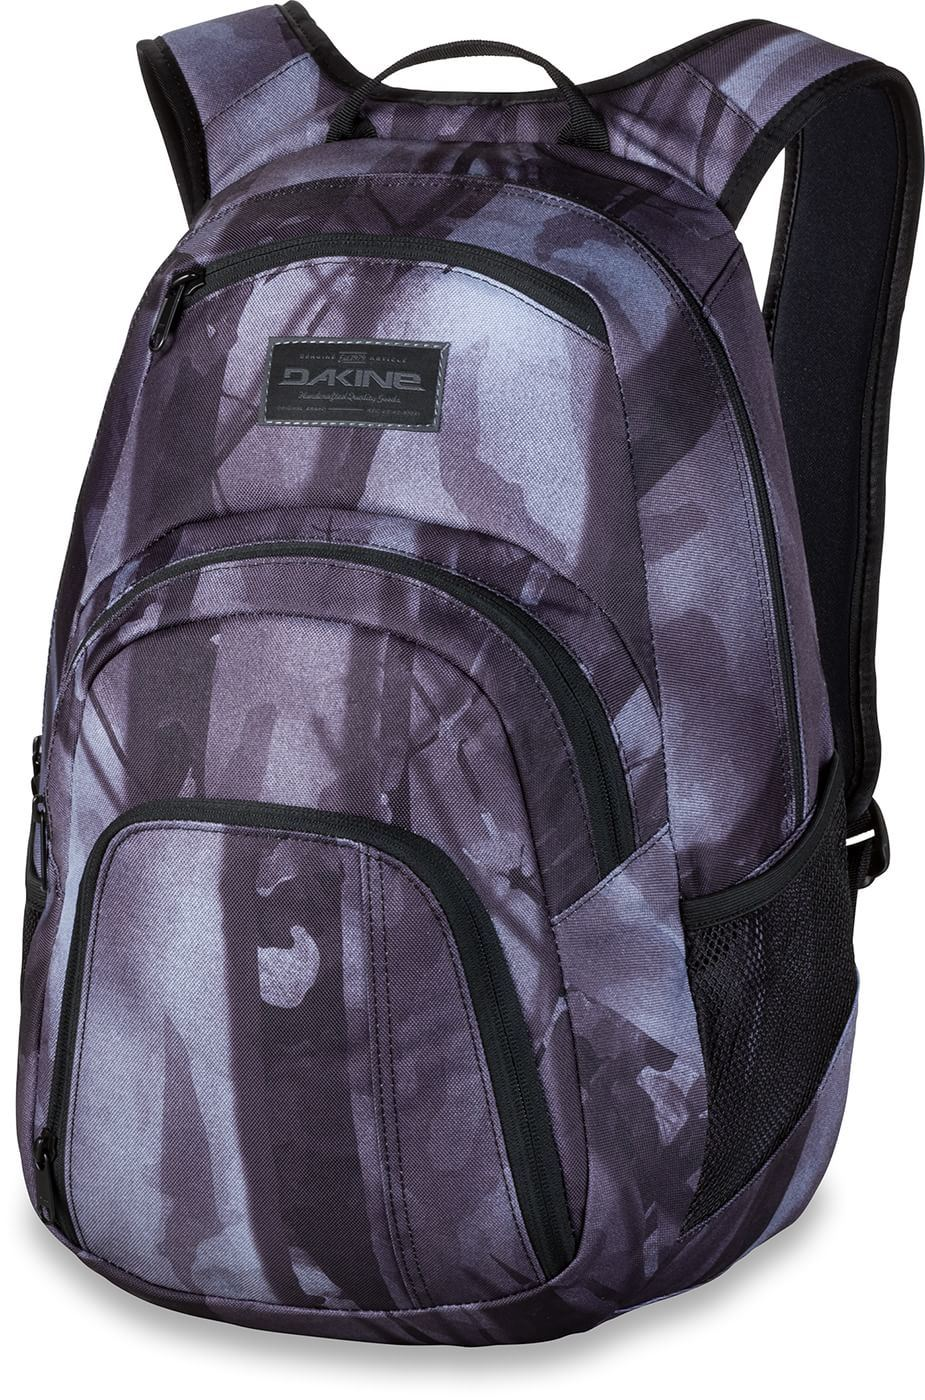 Book Sacks Hiking Back Pack Cheap Bookbags Rucksack Bookbag